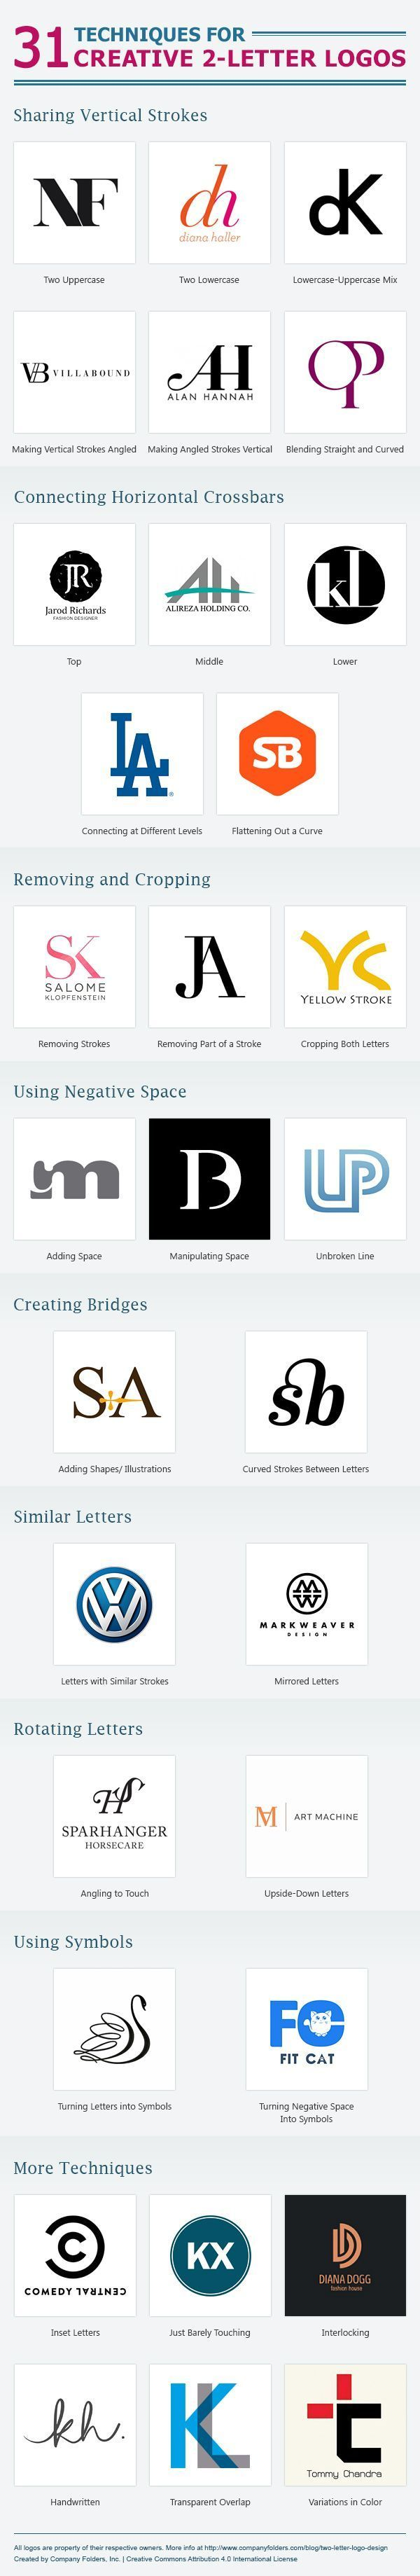 Business infographic : Business infographic : Got a 2-Letter Business Name 31 Ways to Make Your Logo Mo